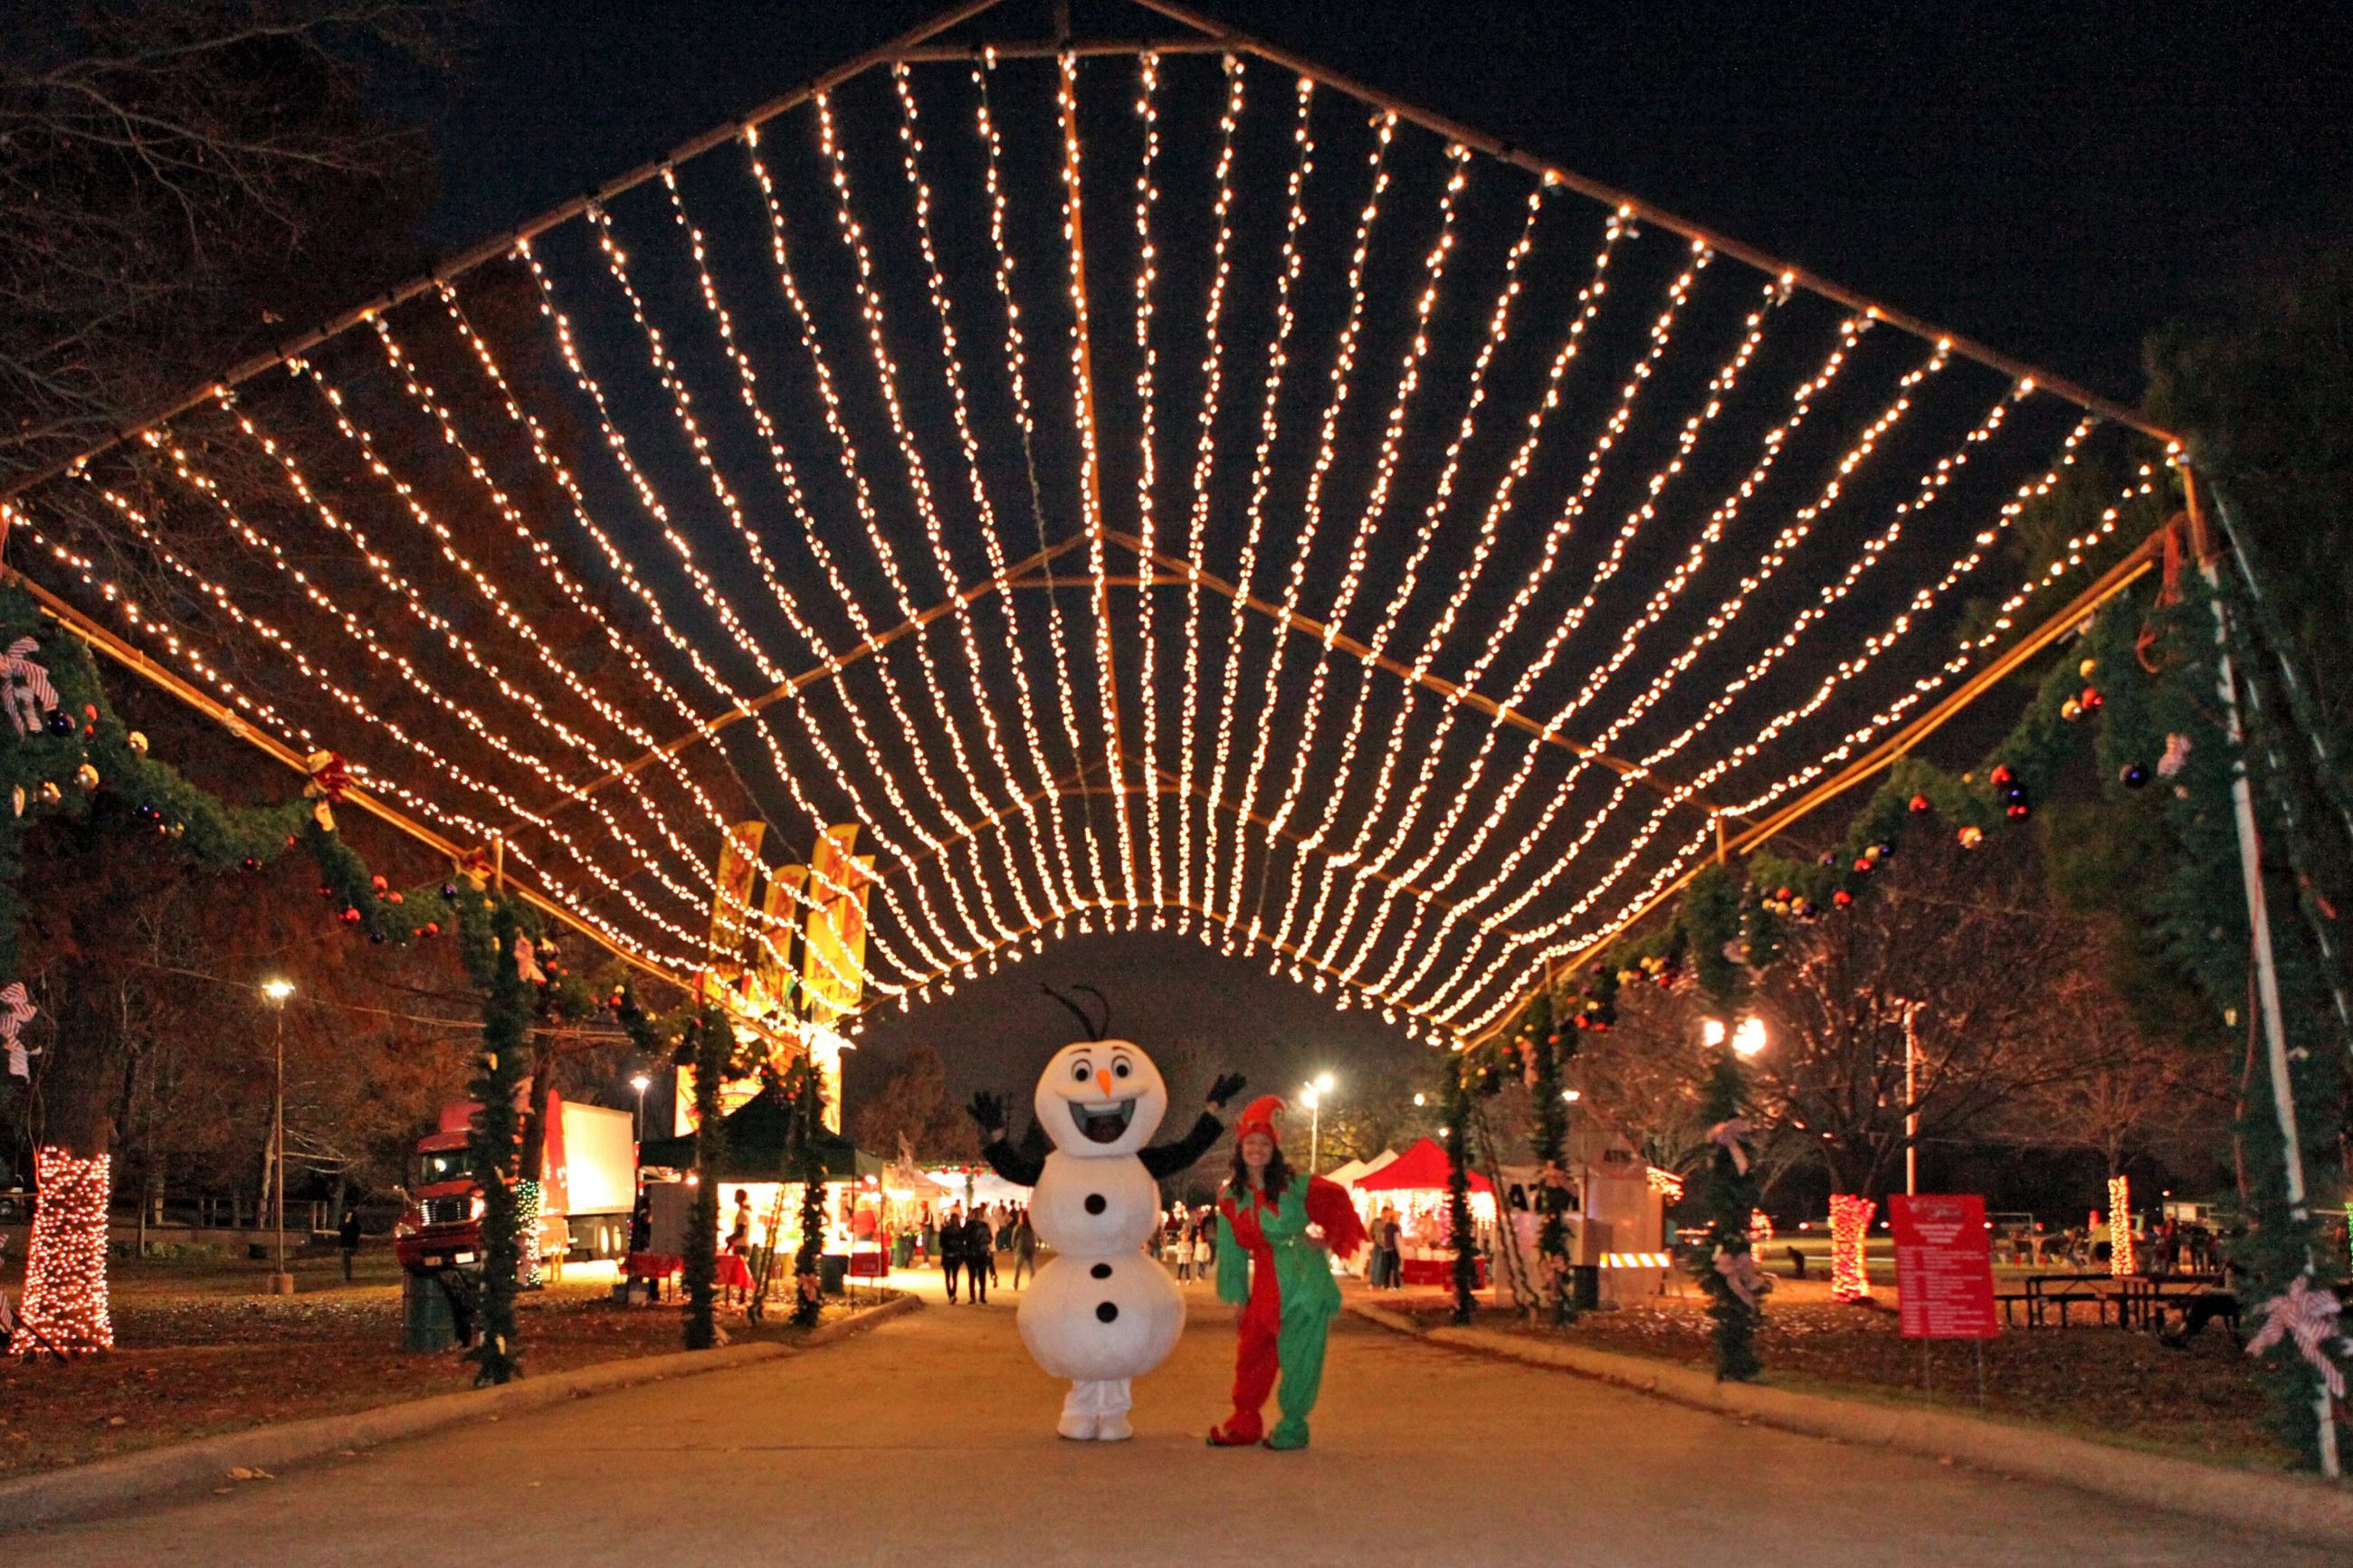 When Is Christmas In The Park 2020 Christmas in the Park 2020 | Mesquite, TX   Official Website